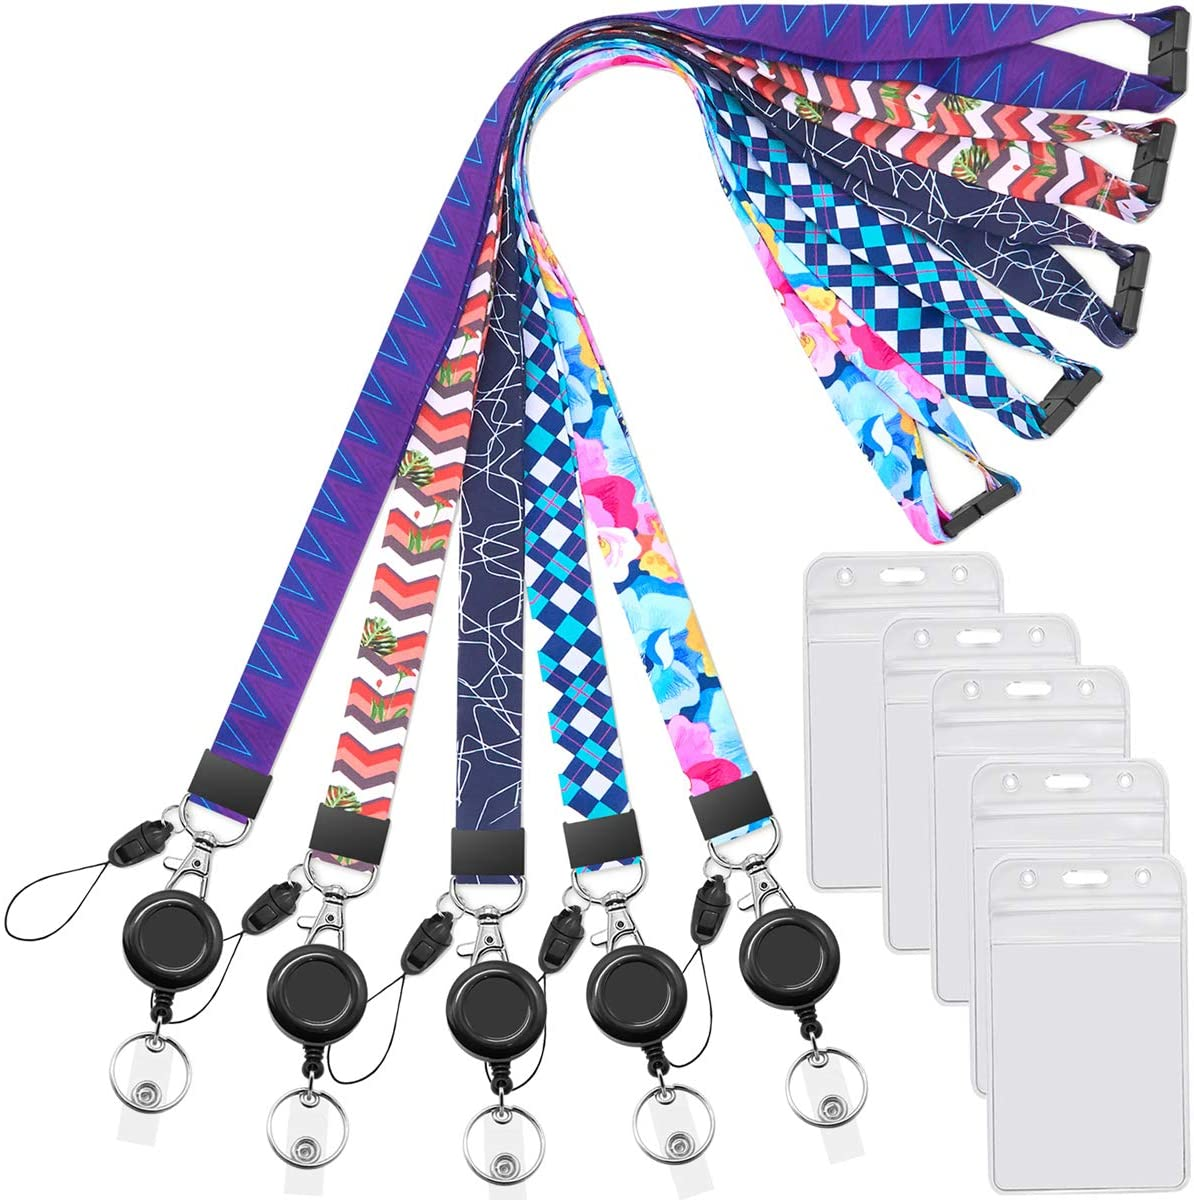 Breakaway lanyard necklace with ID badge reel 30 to 42 clasp and length select retractable badge holder